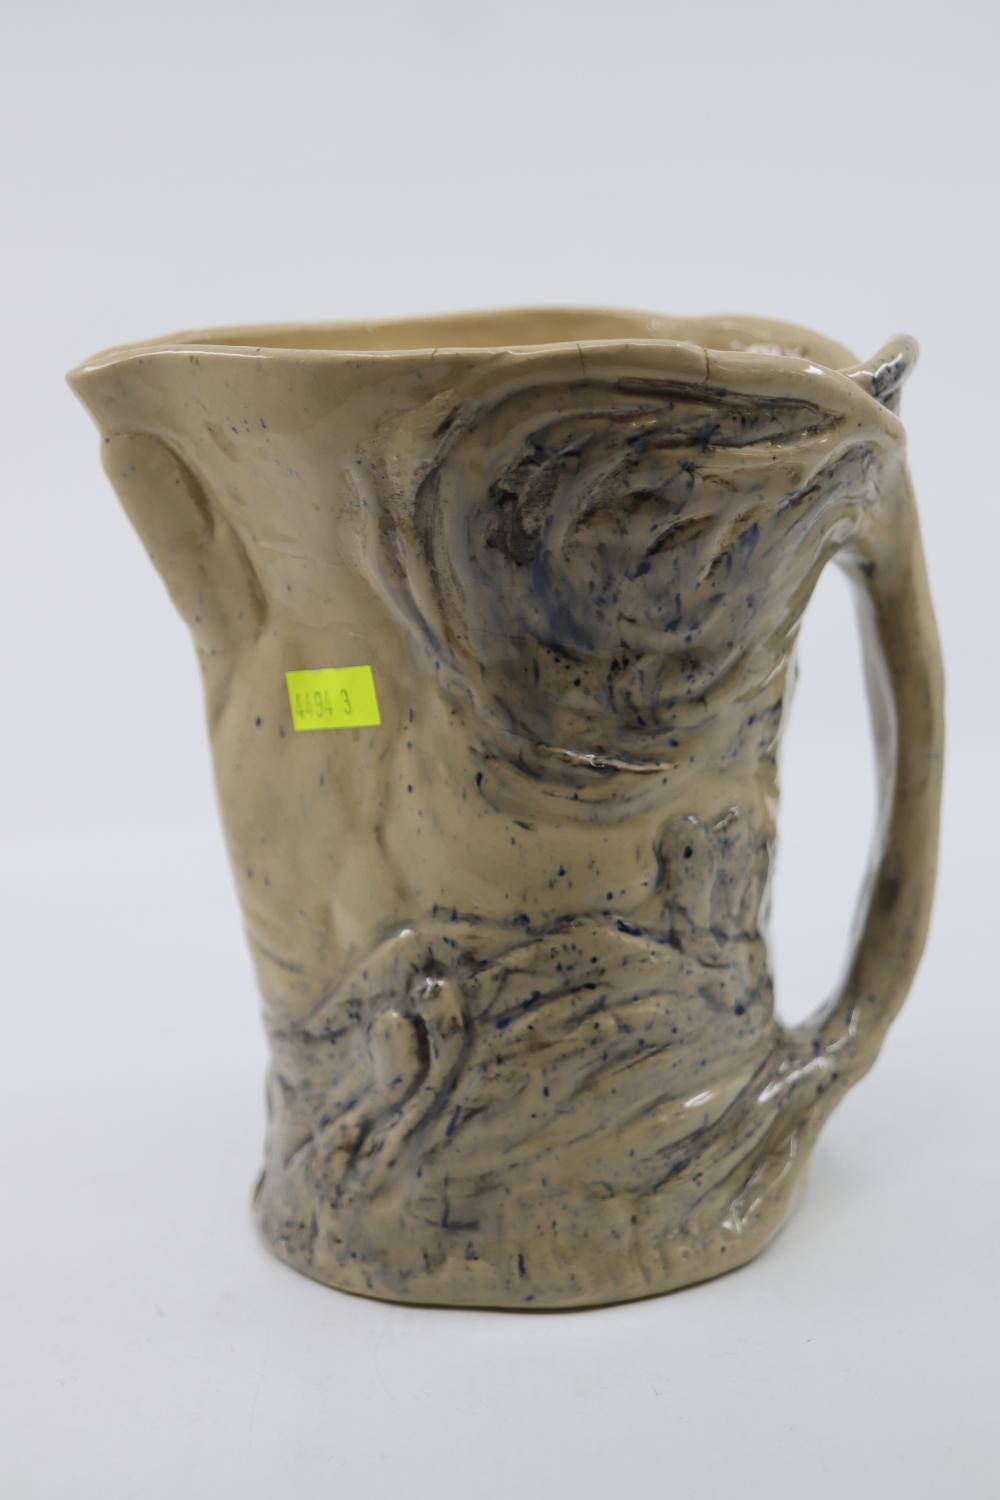 LARGE SIGNED MERRICK BOYD JUG WITH TREE TRUNK FORM 19 CM H